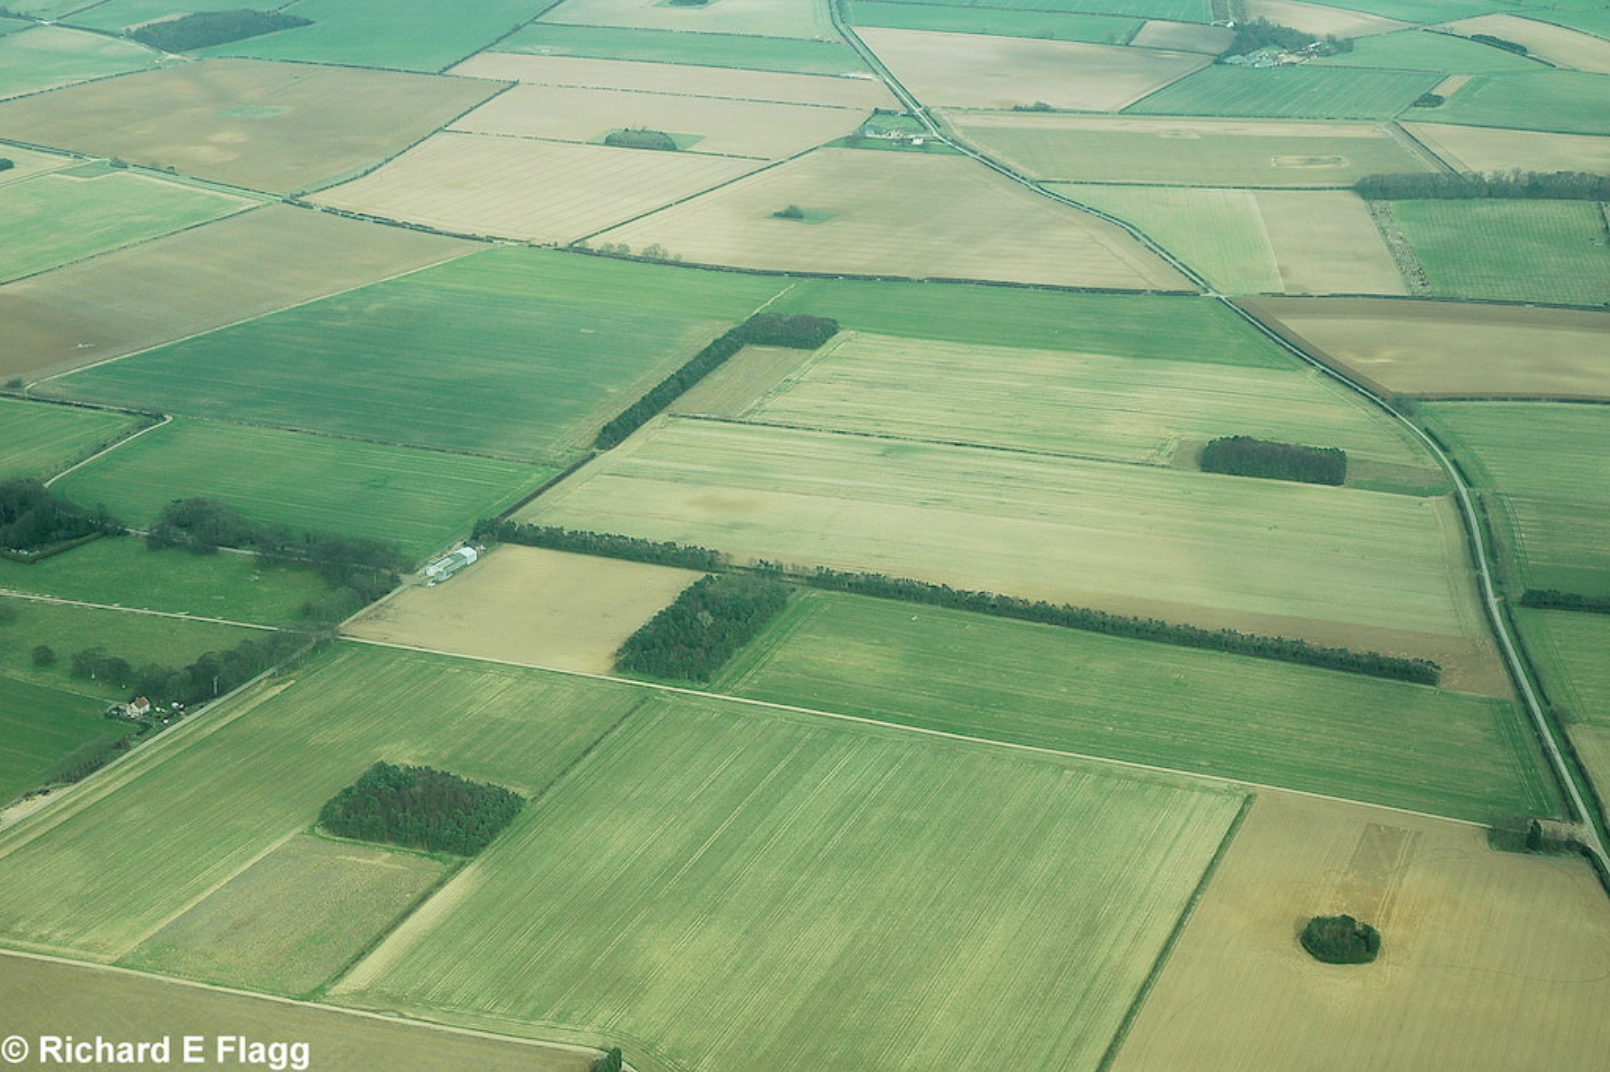 009Aerial View of RAF Docking Airfield - 15 March 2009.png